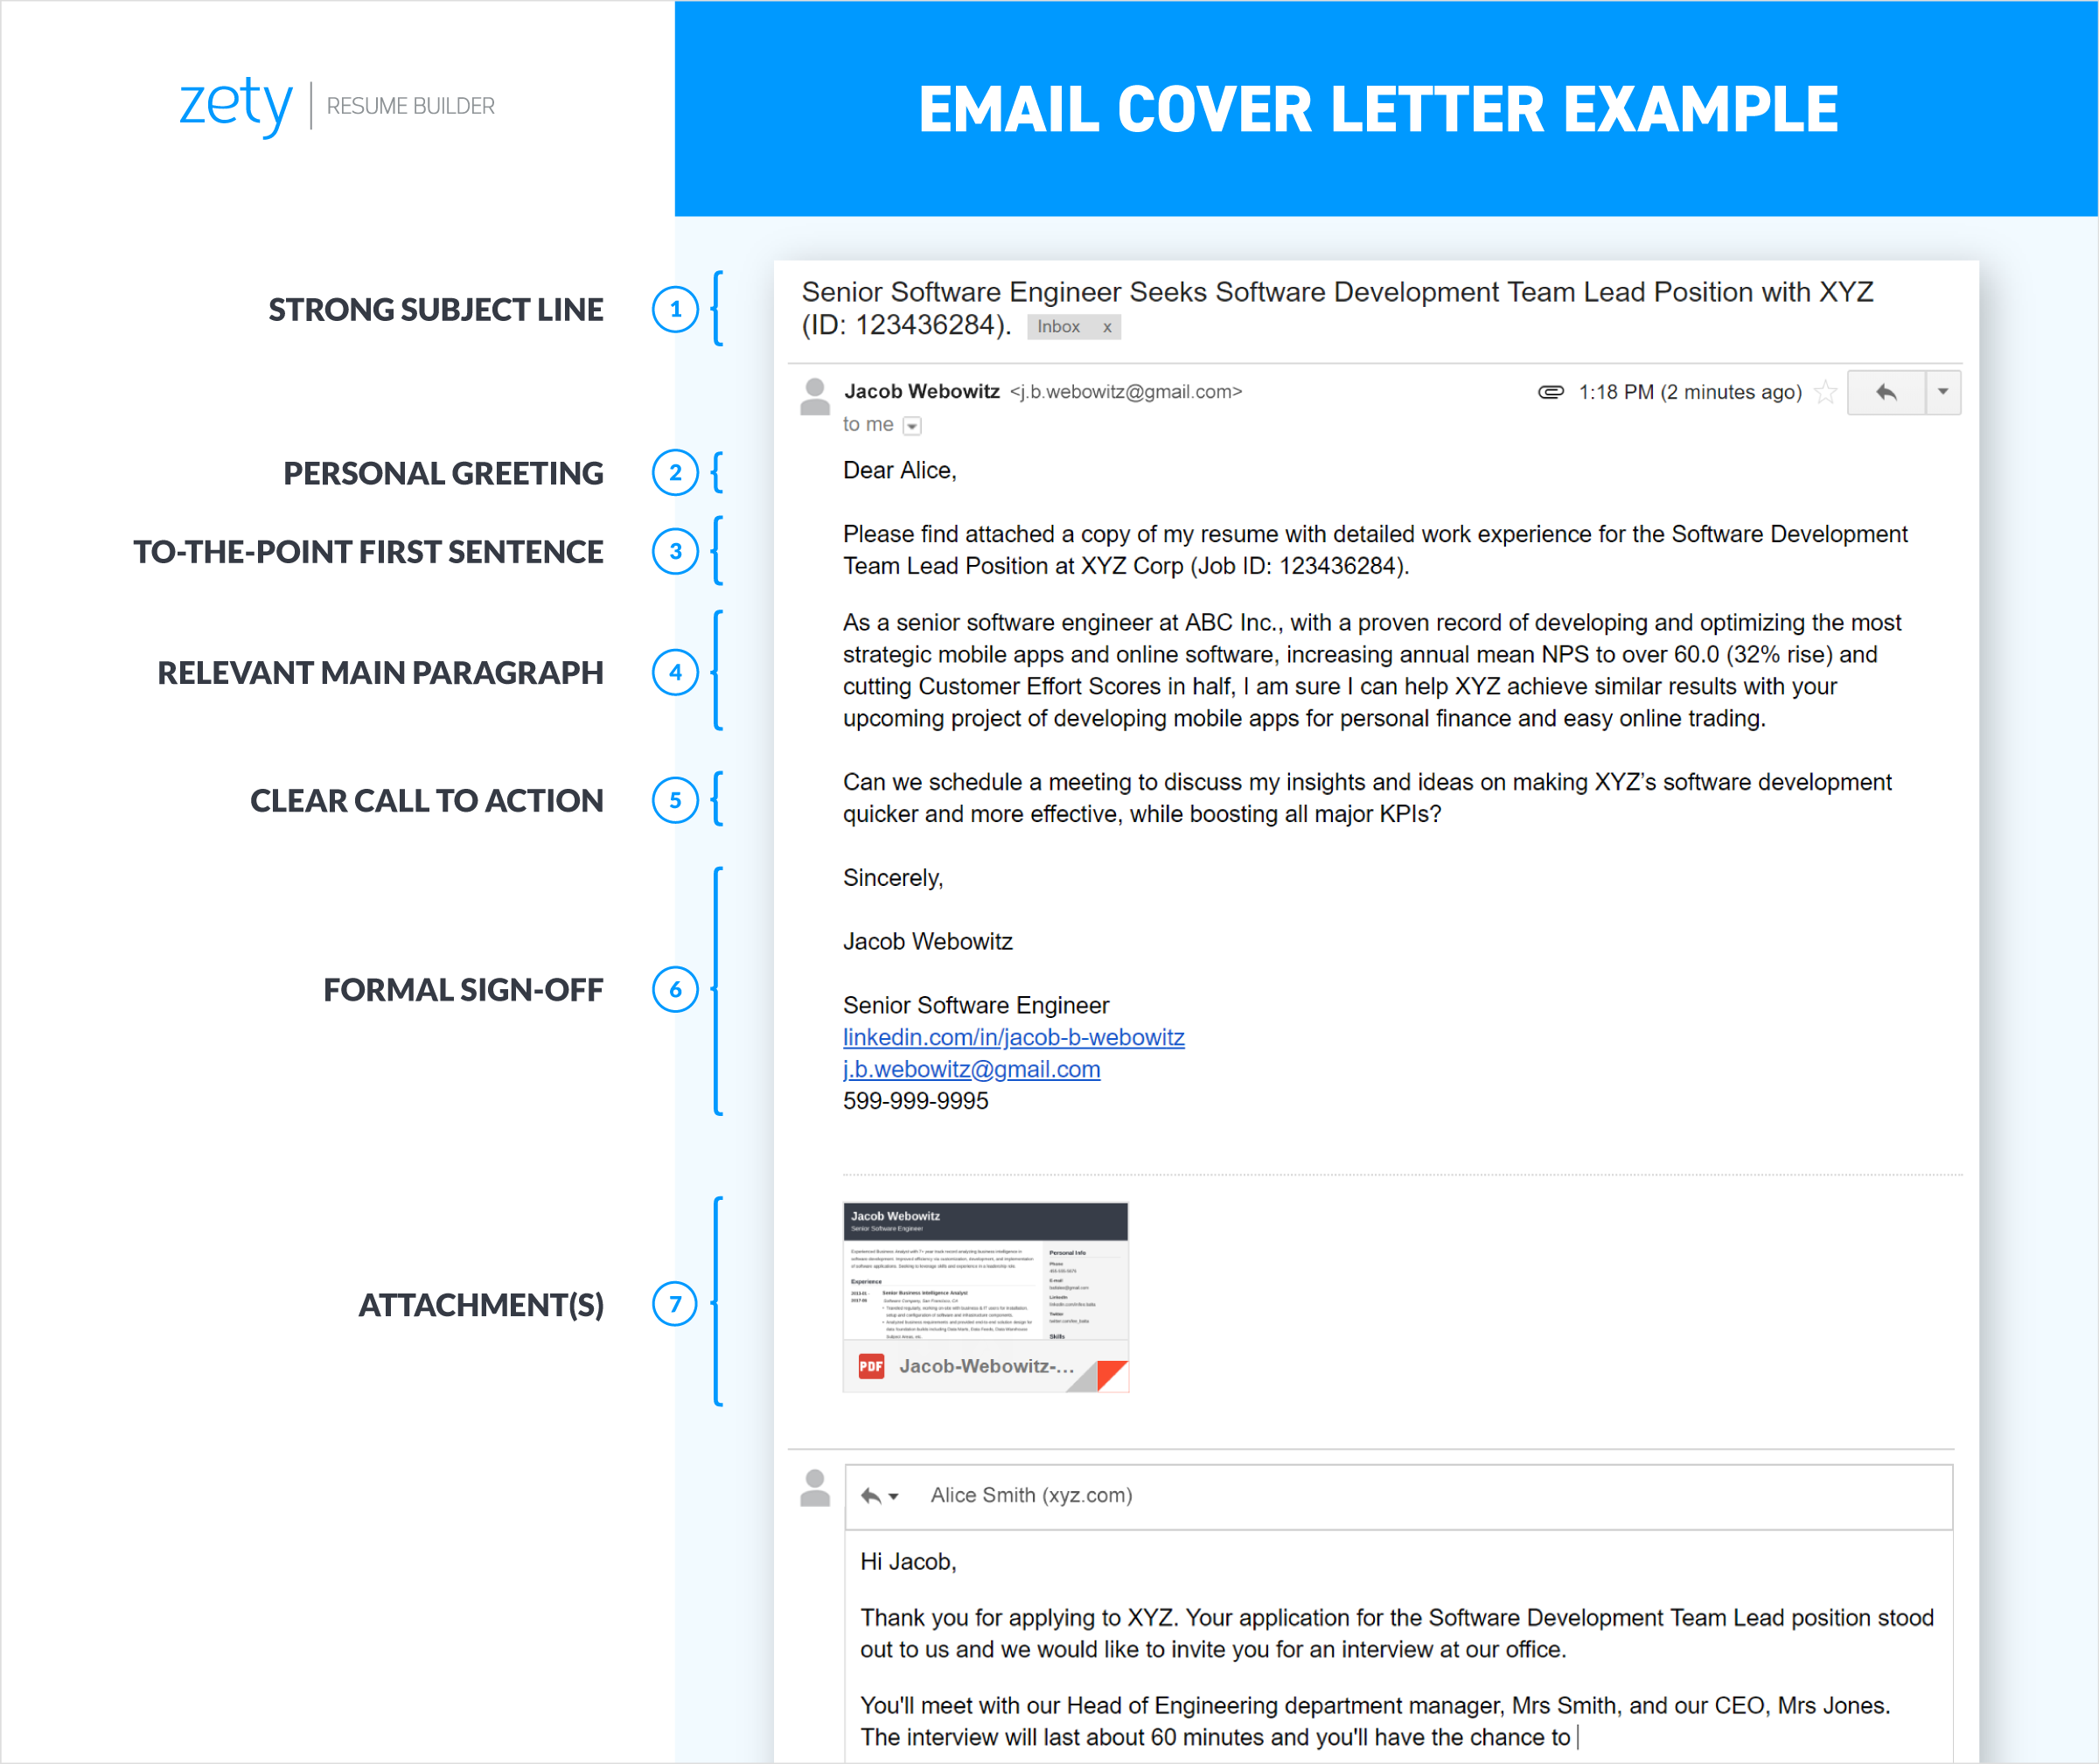 Email Cover Letter: Sample, Proper Email Format, 20+ Tips ...